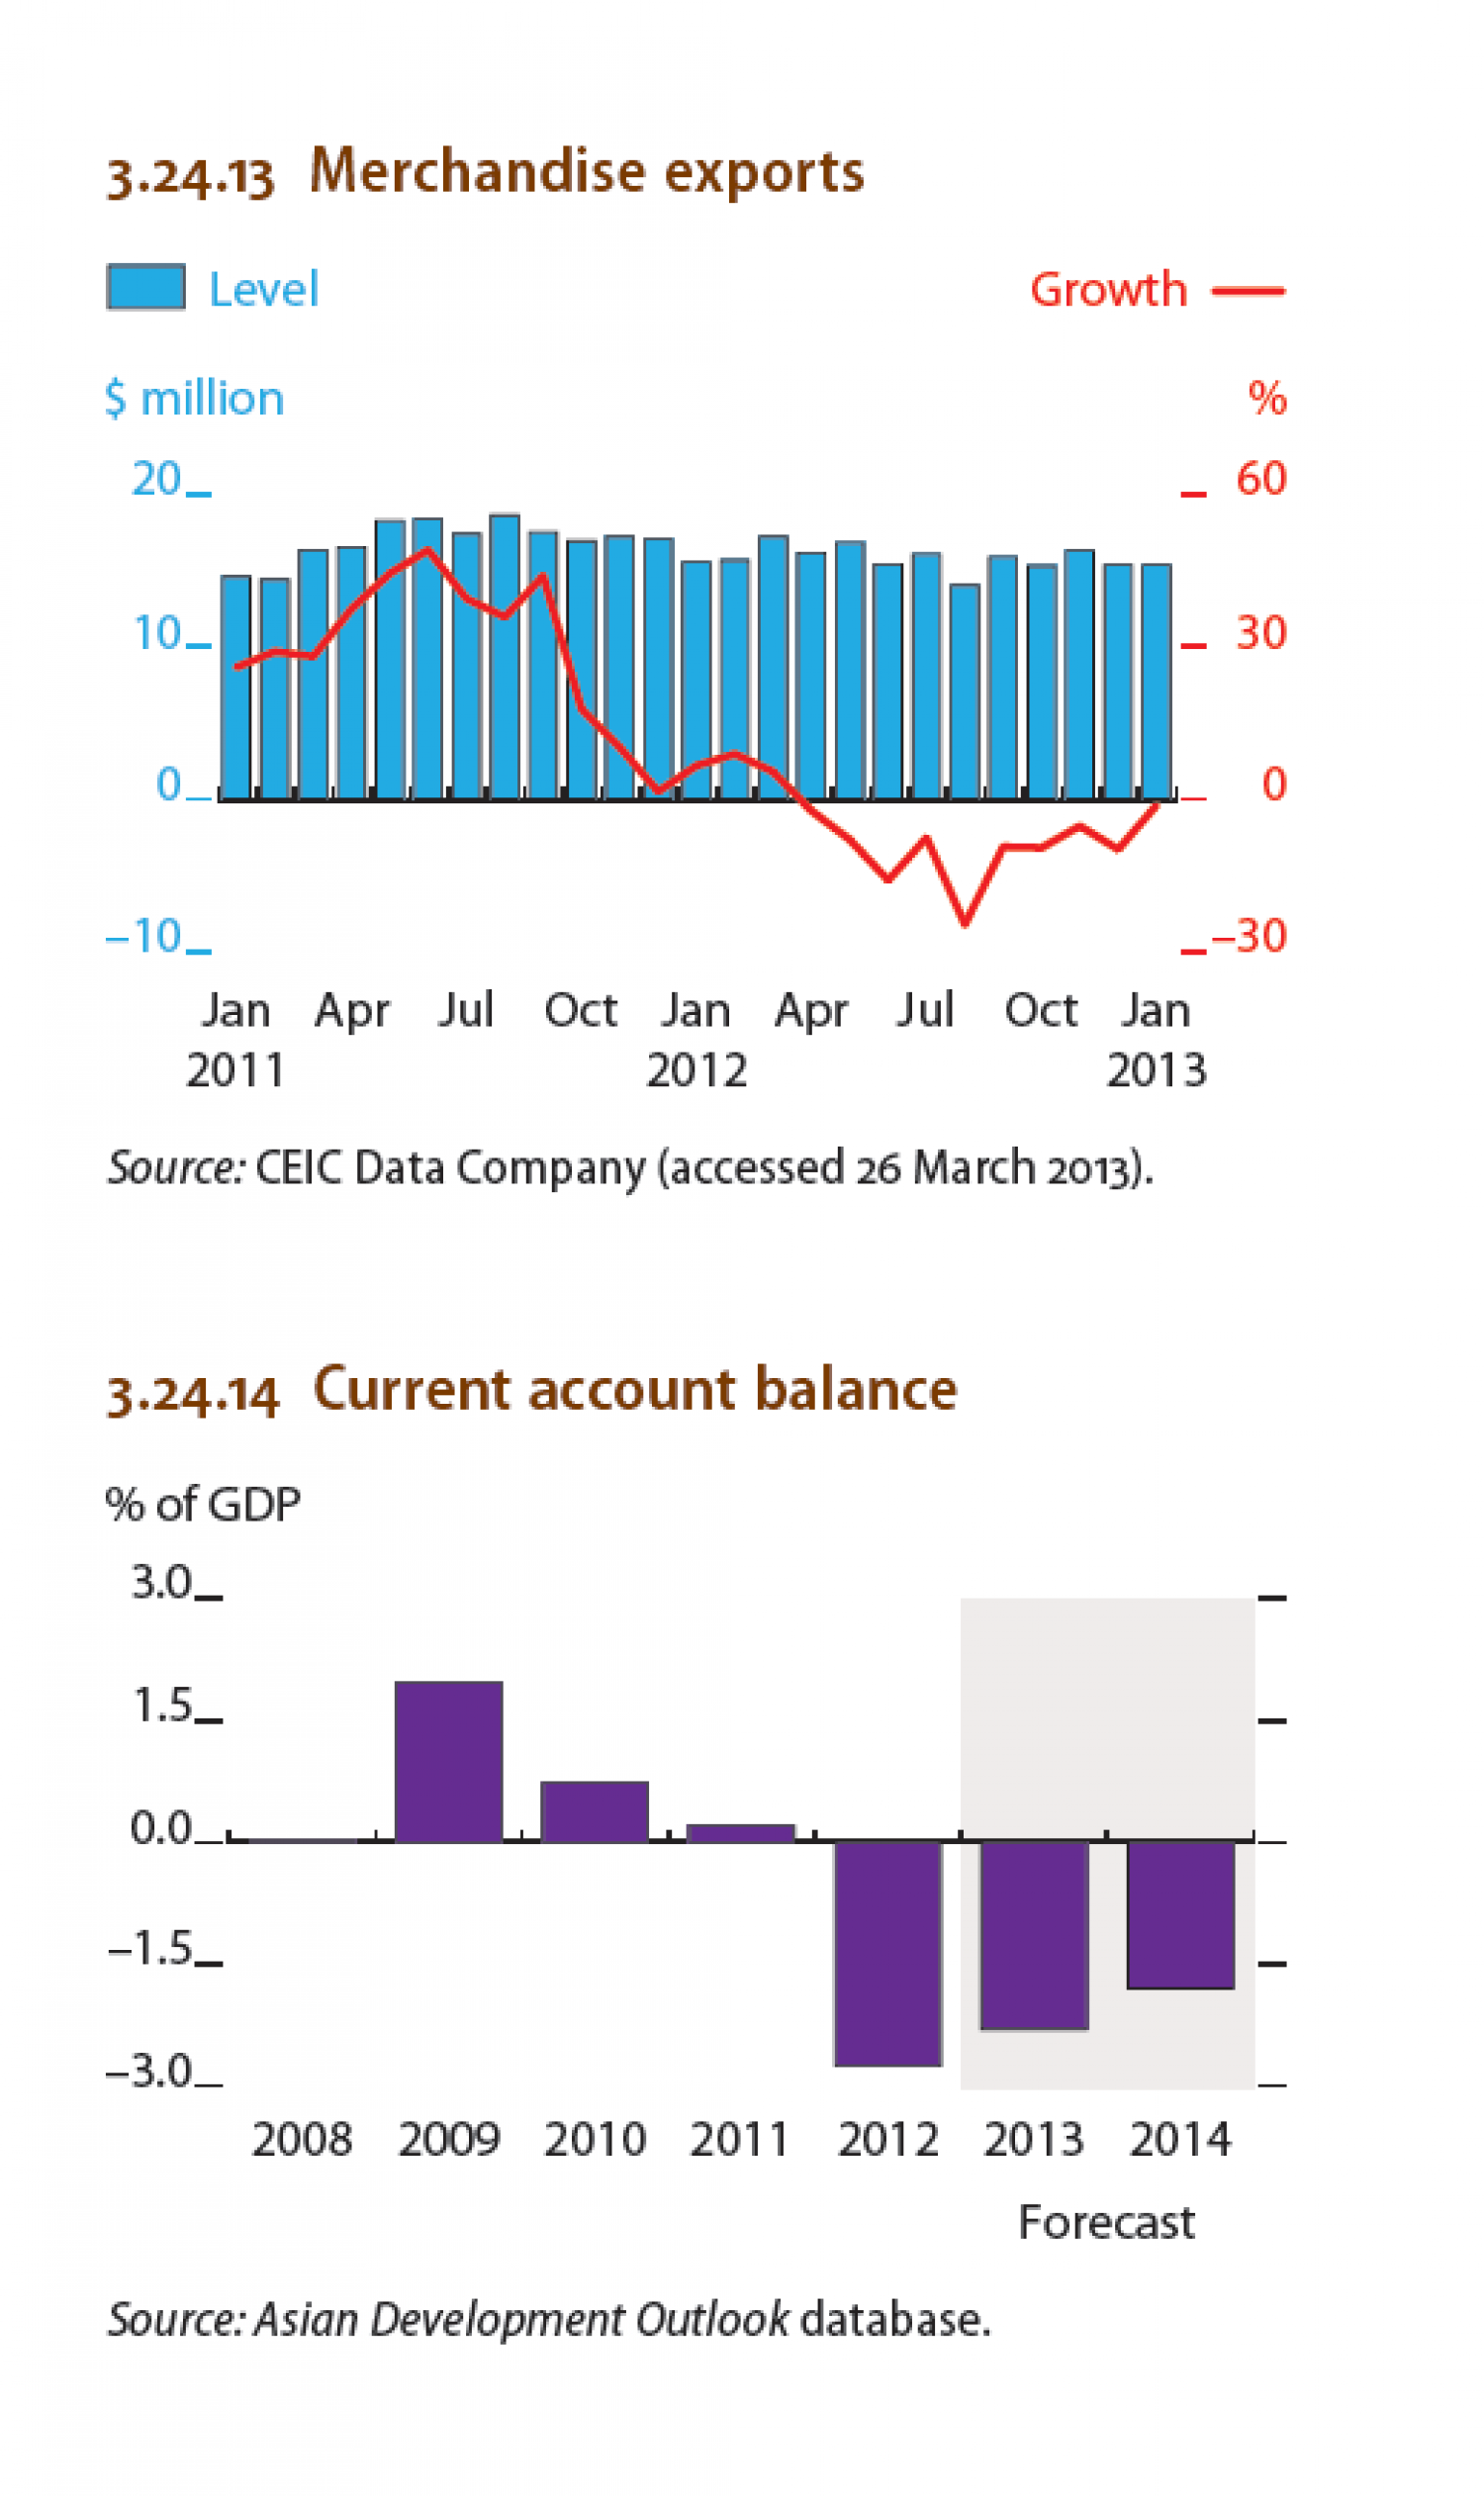 Indonesia : Merchandise exports, current account balance Infographic